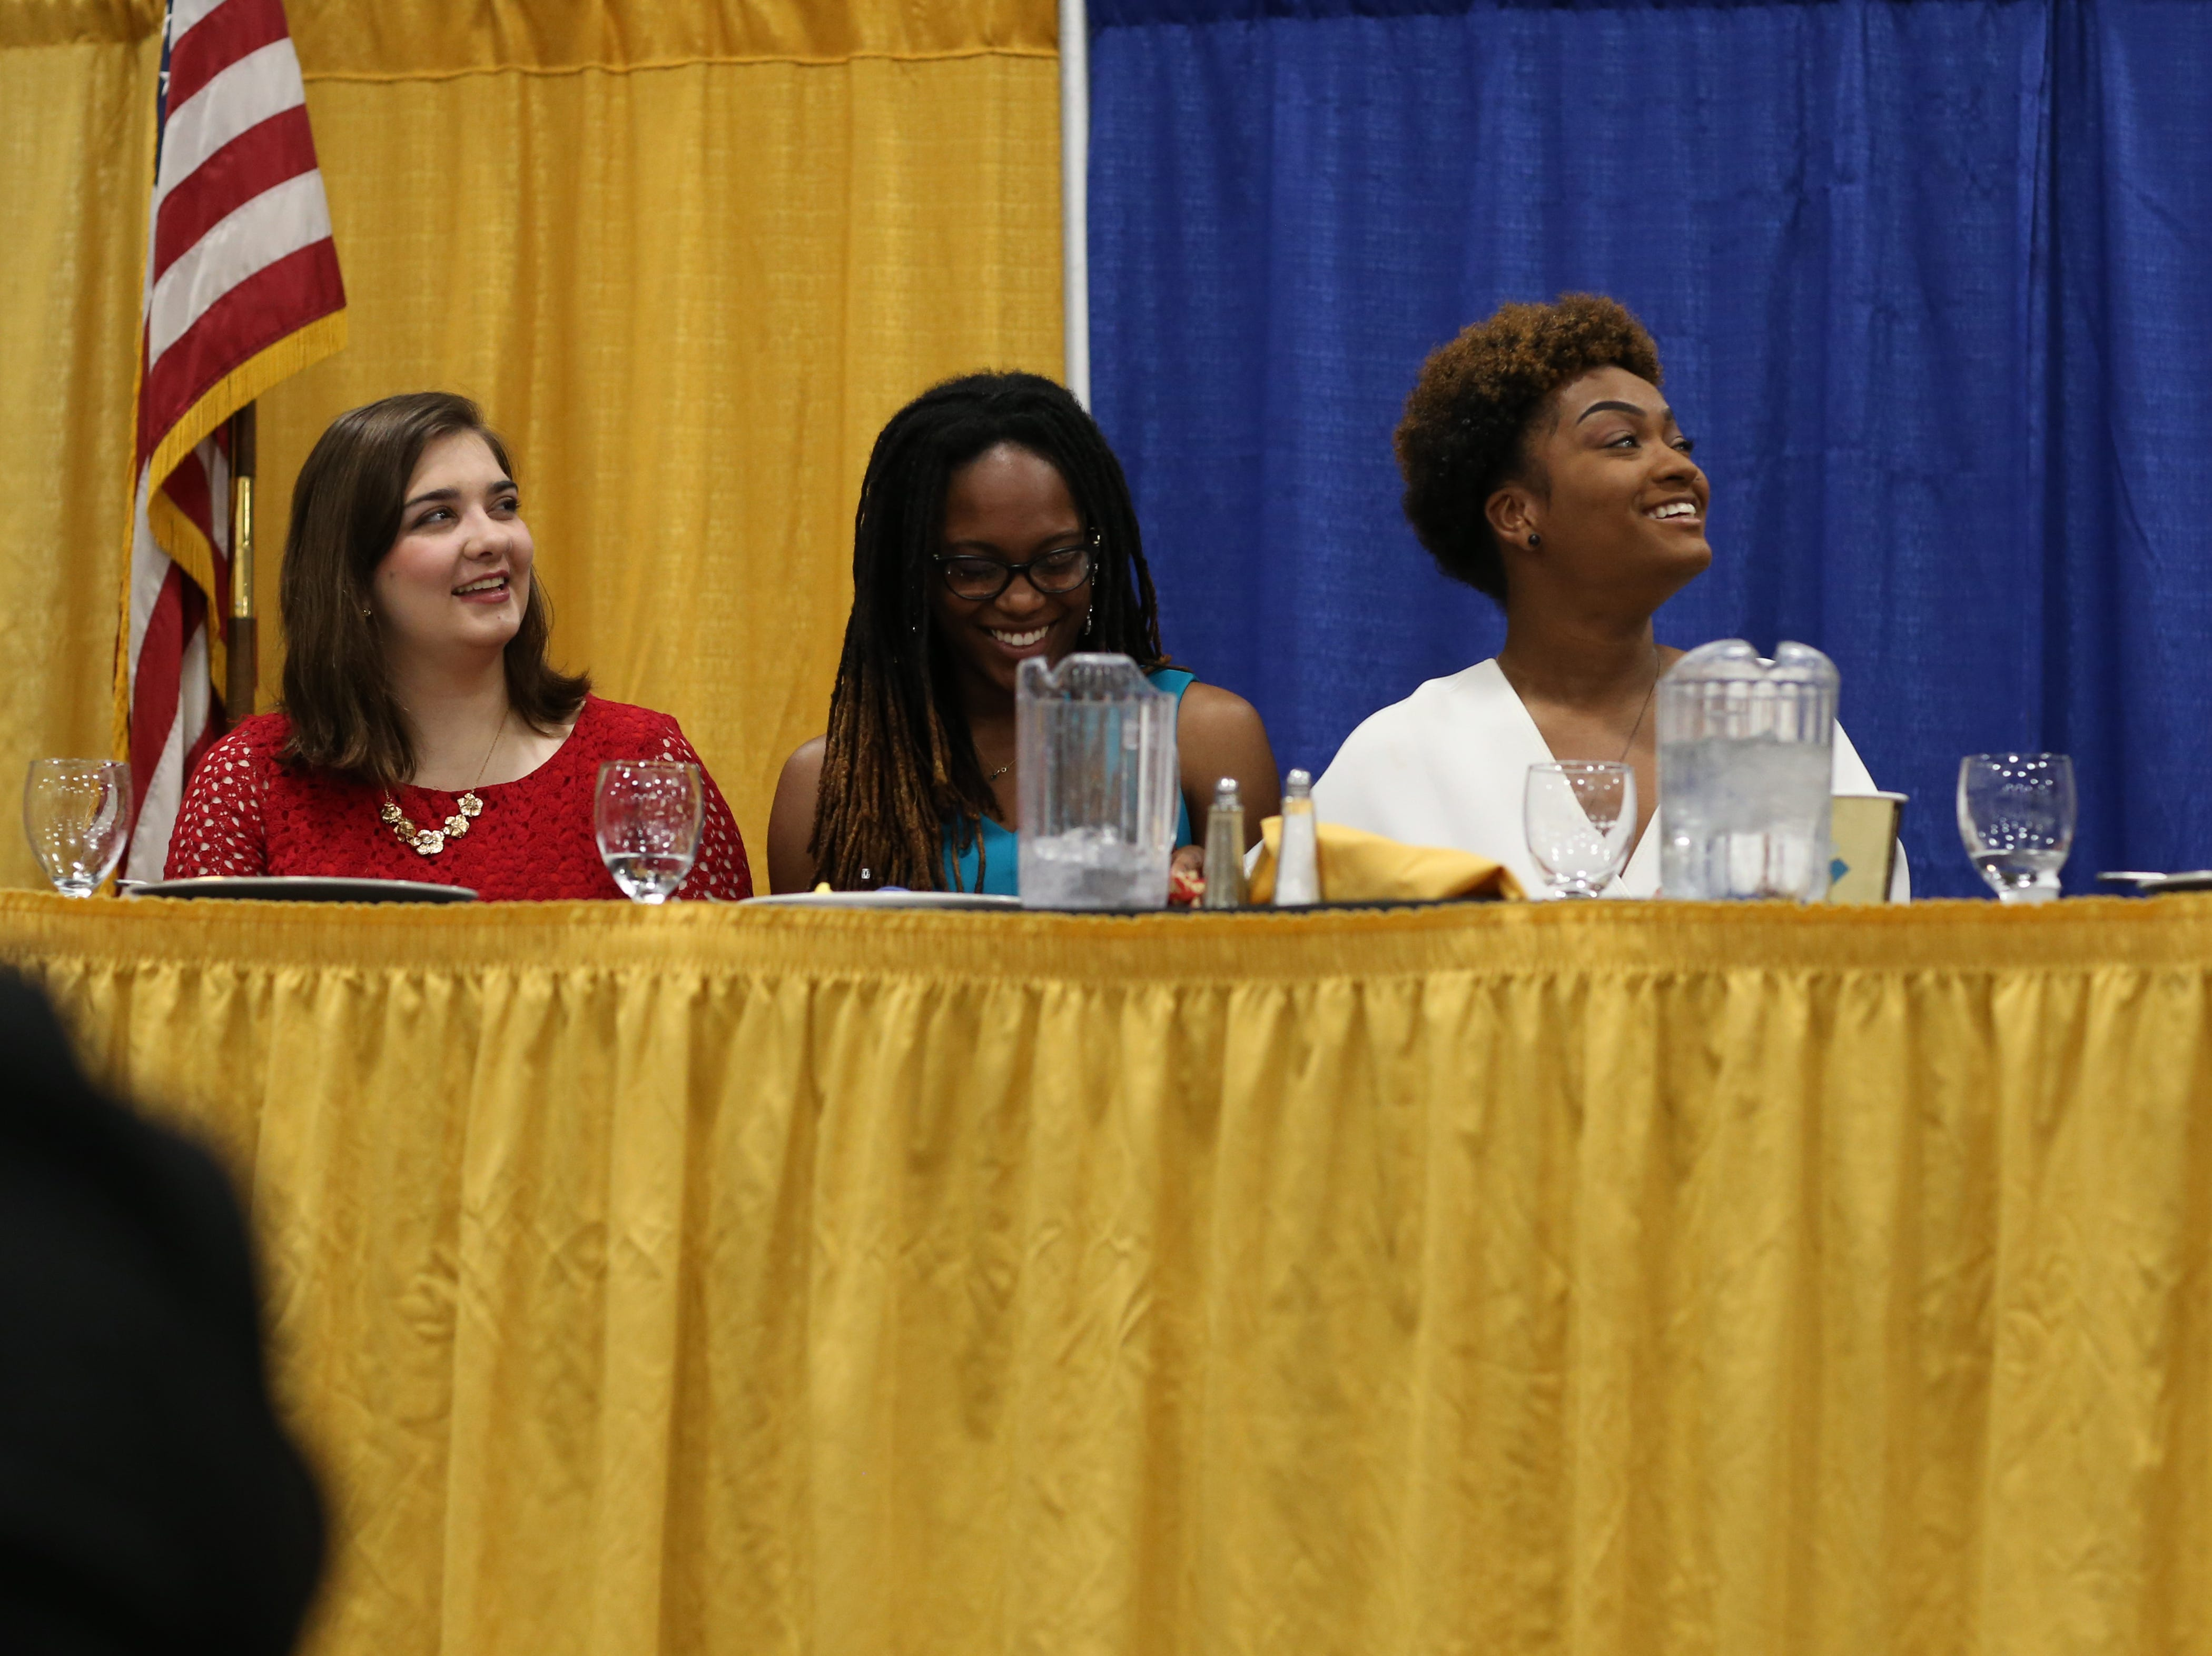 Leon County School Board Student Member Ashley Campbell, left, Florida A&M University NAACP Chapter President Joanna Atkinson and Florida State University NAACP Chapter President Nastassia Janvier listen as FSU President John Thrasher speaks during the Martin Luther King Jr. commemorative breakfast at Donald L. Tucker Civic Center Friday, Jan. 18, 2019.